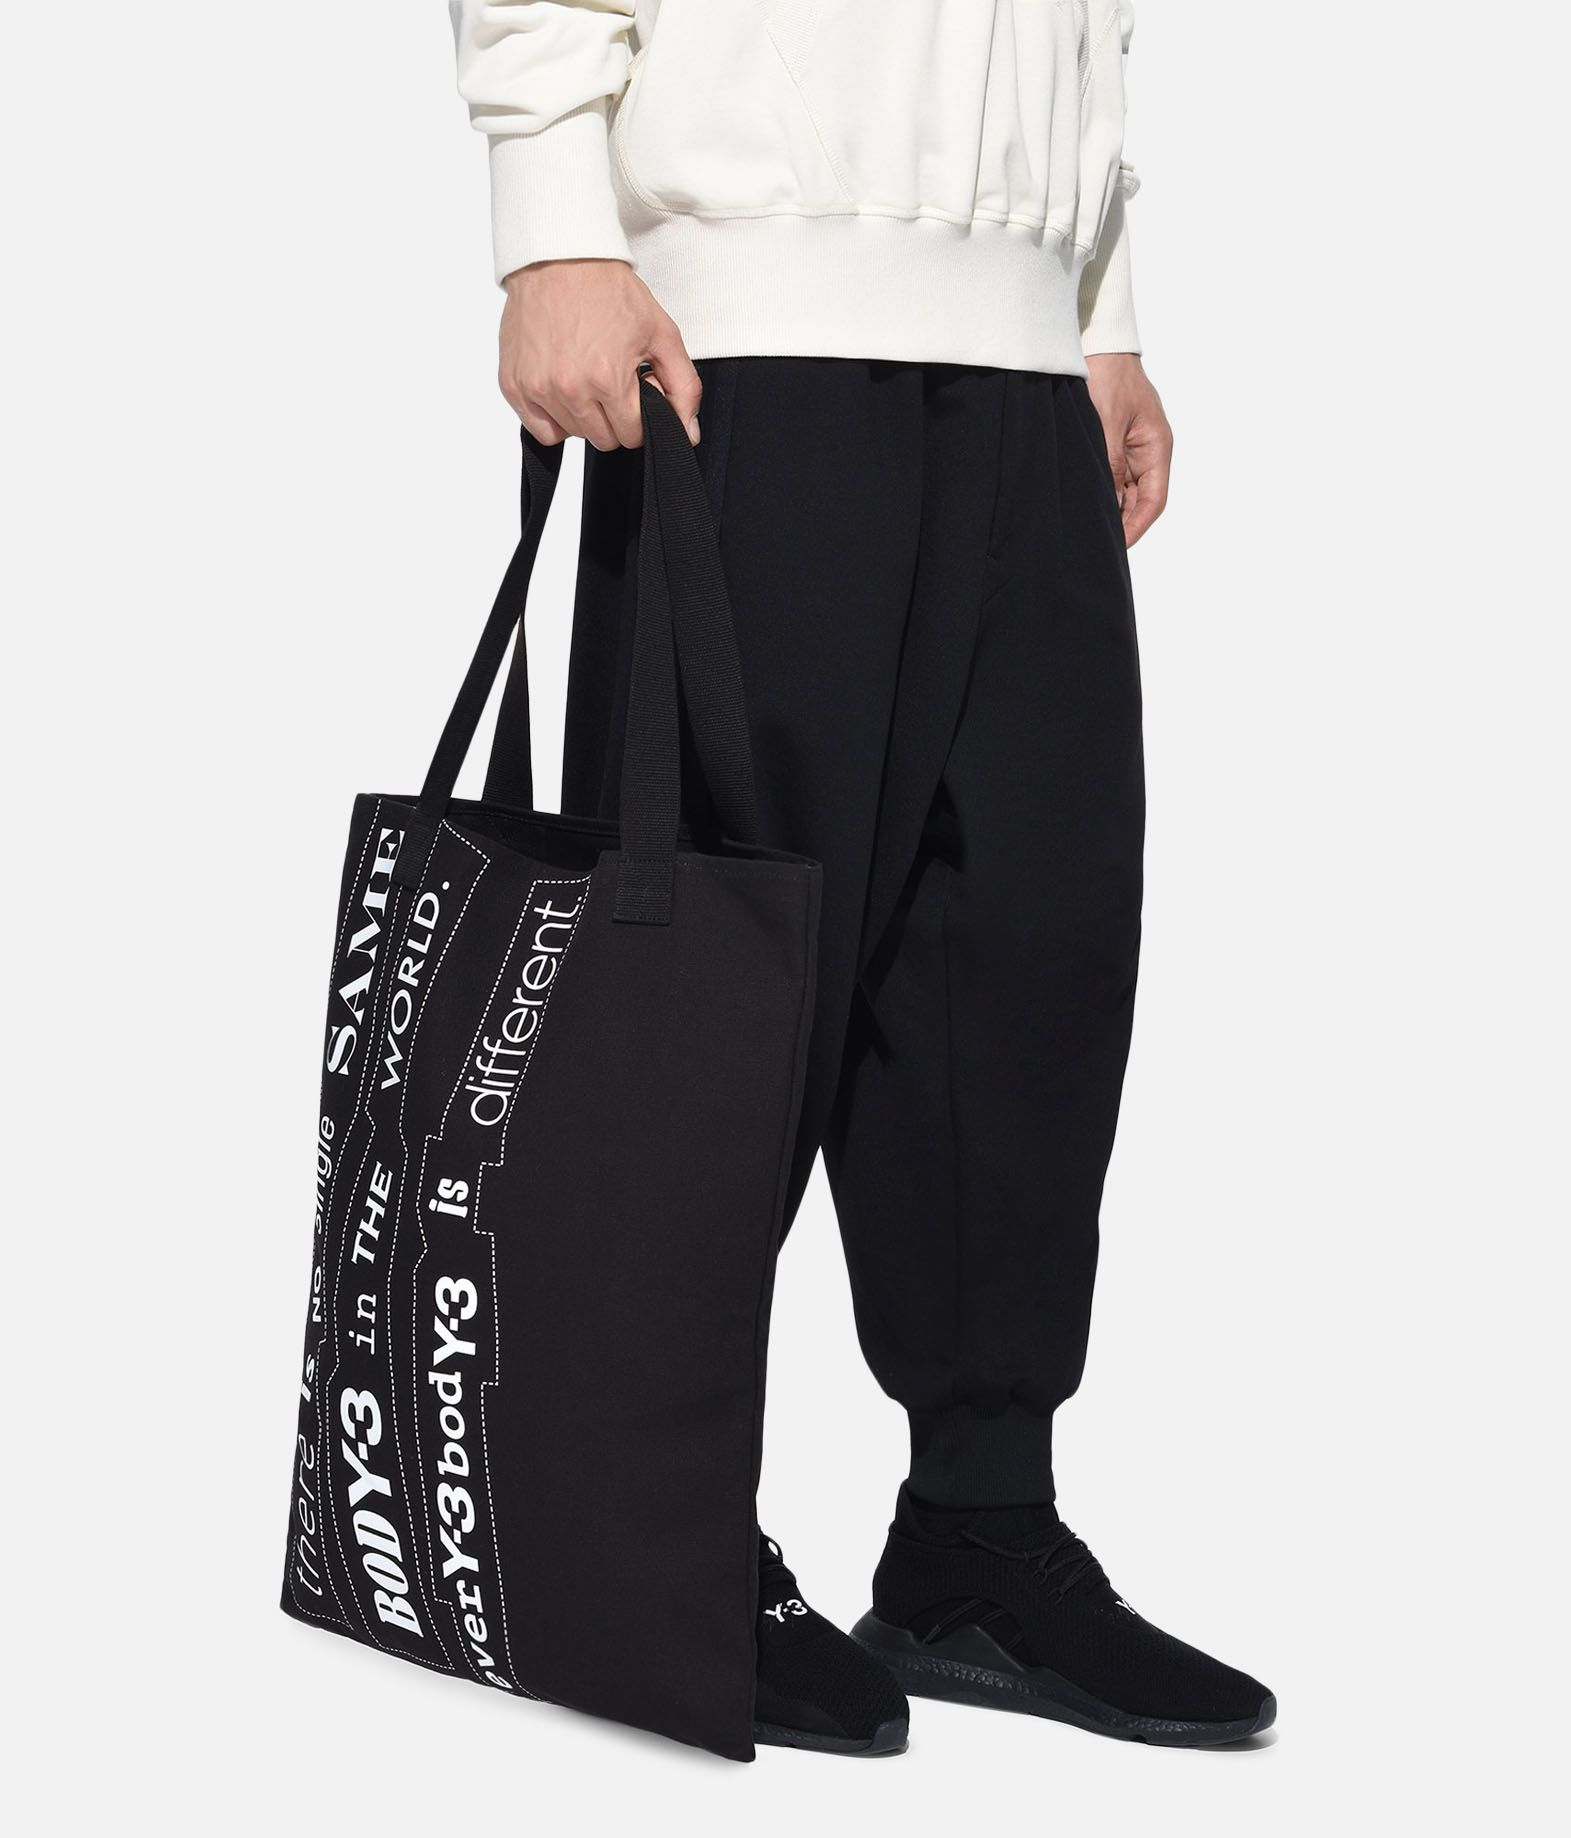 Y-3 Y-3 Slogan Tote Bag Borsa media in tessuto E a